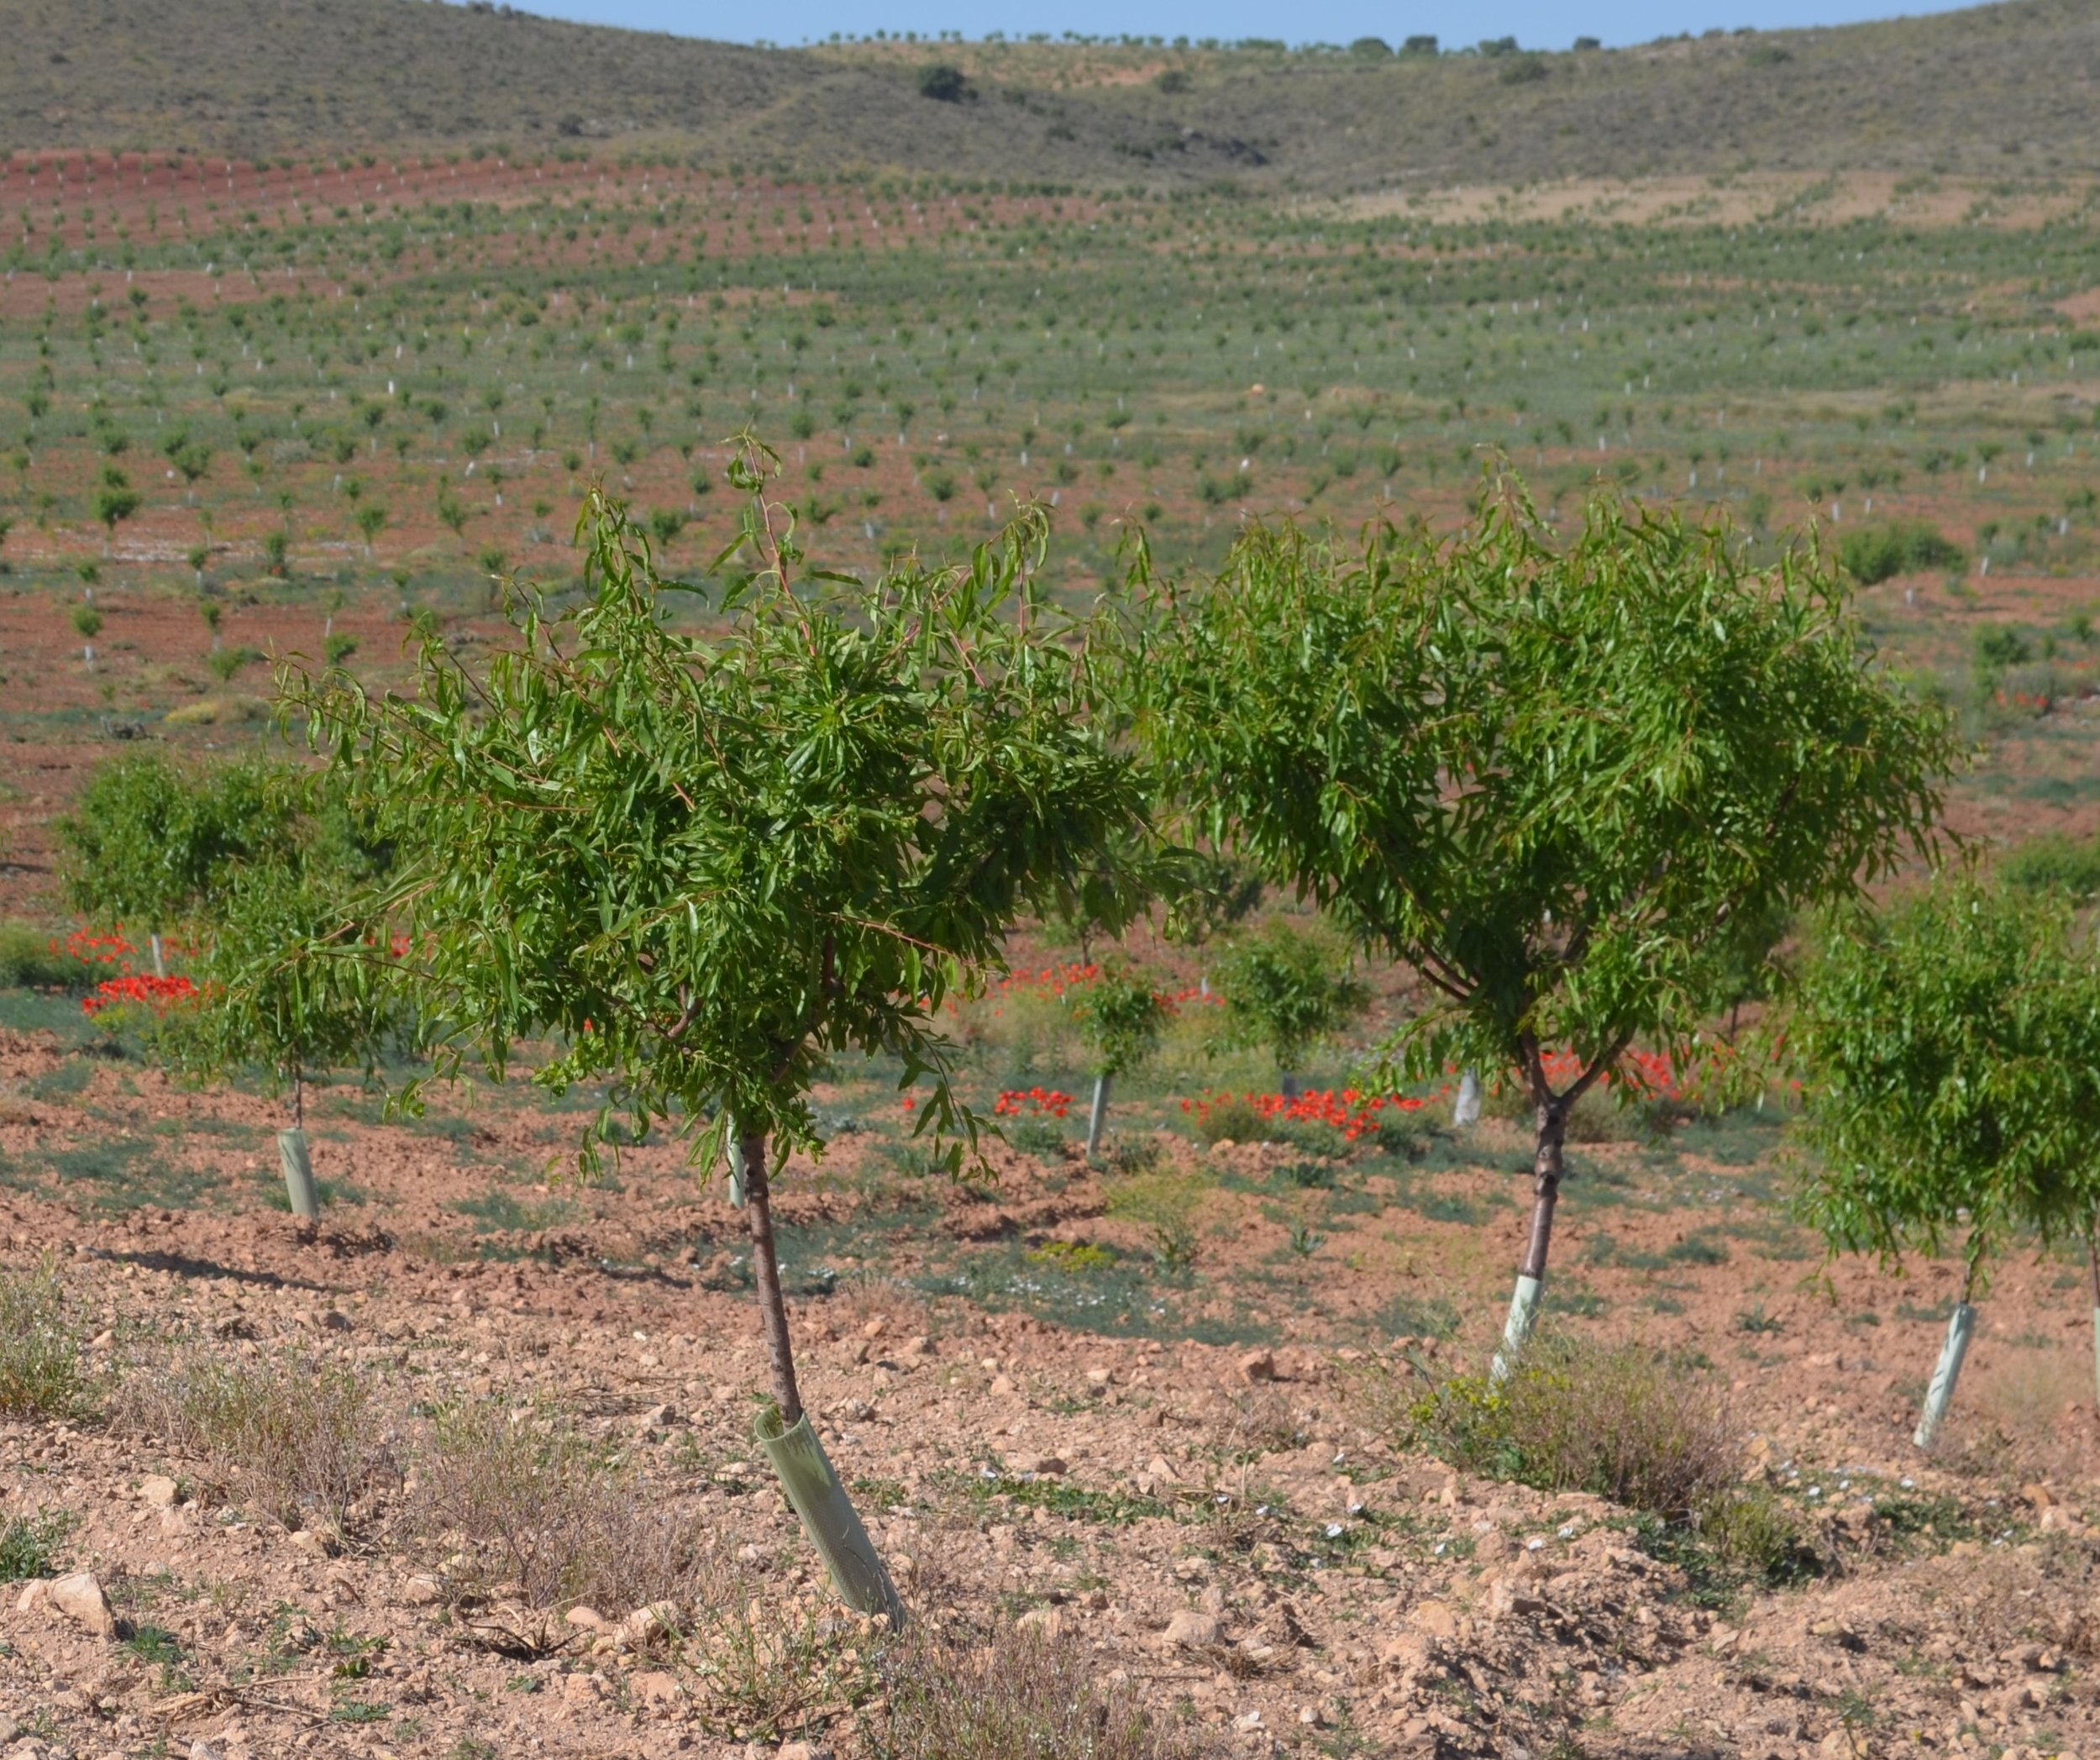 Almond trees, May 2019